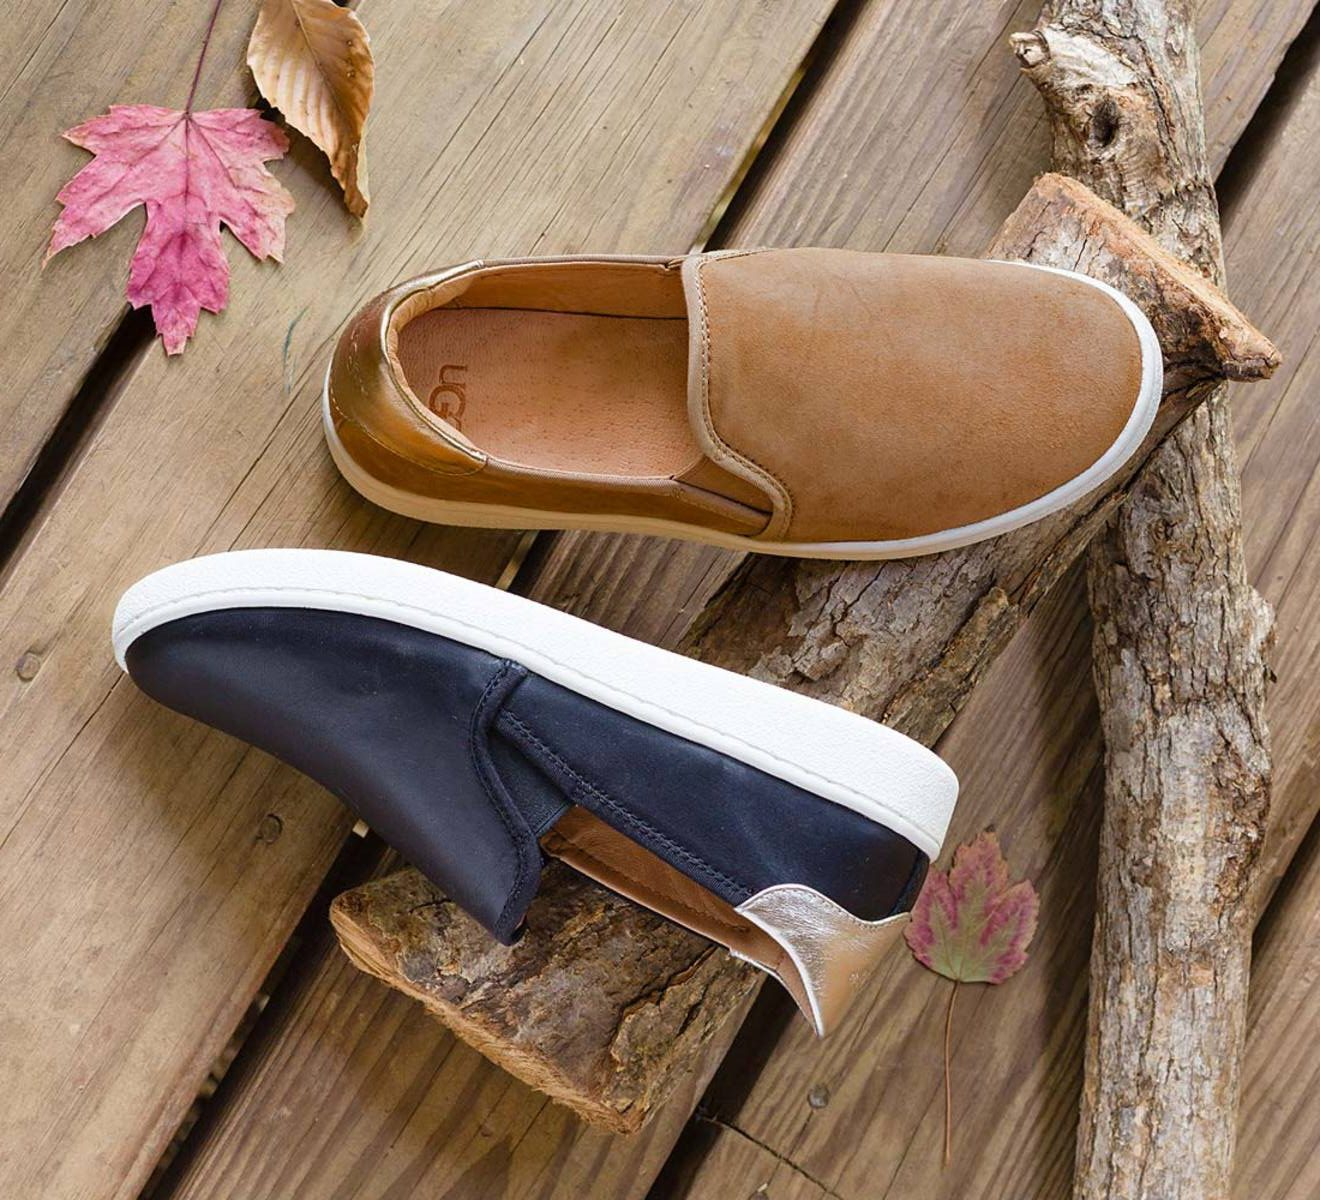 9e45a228be9 Slip on These Sporty Ugg Sneakers in Leather or Suede